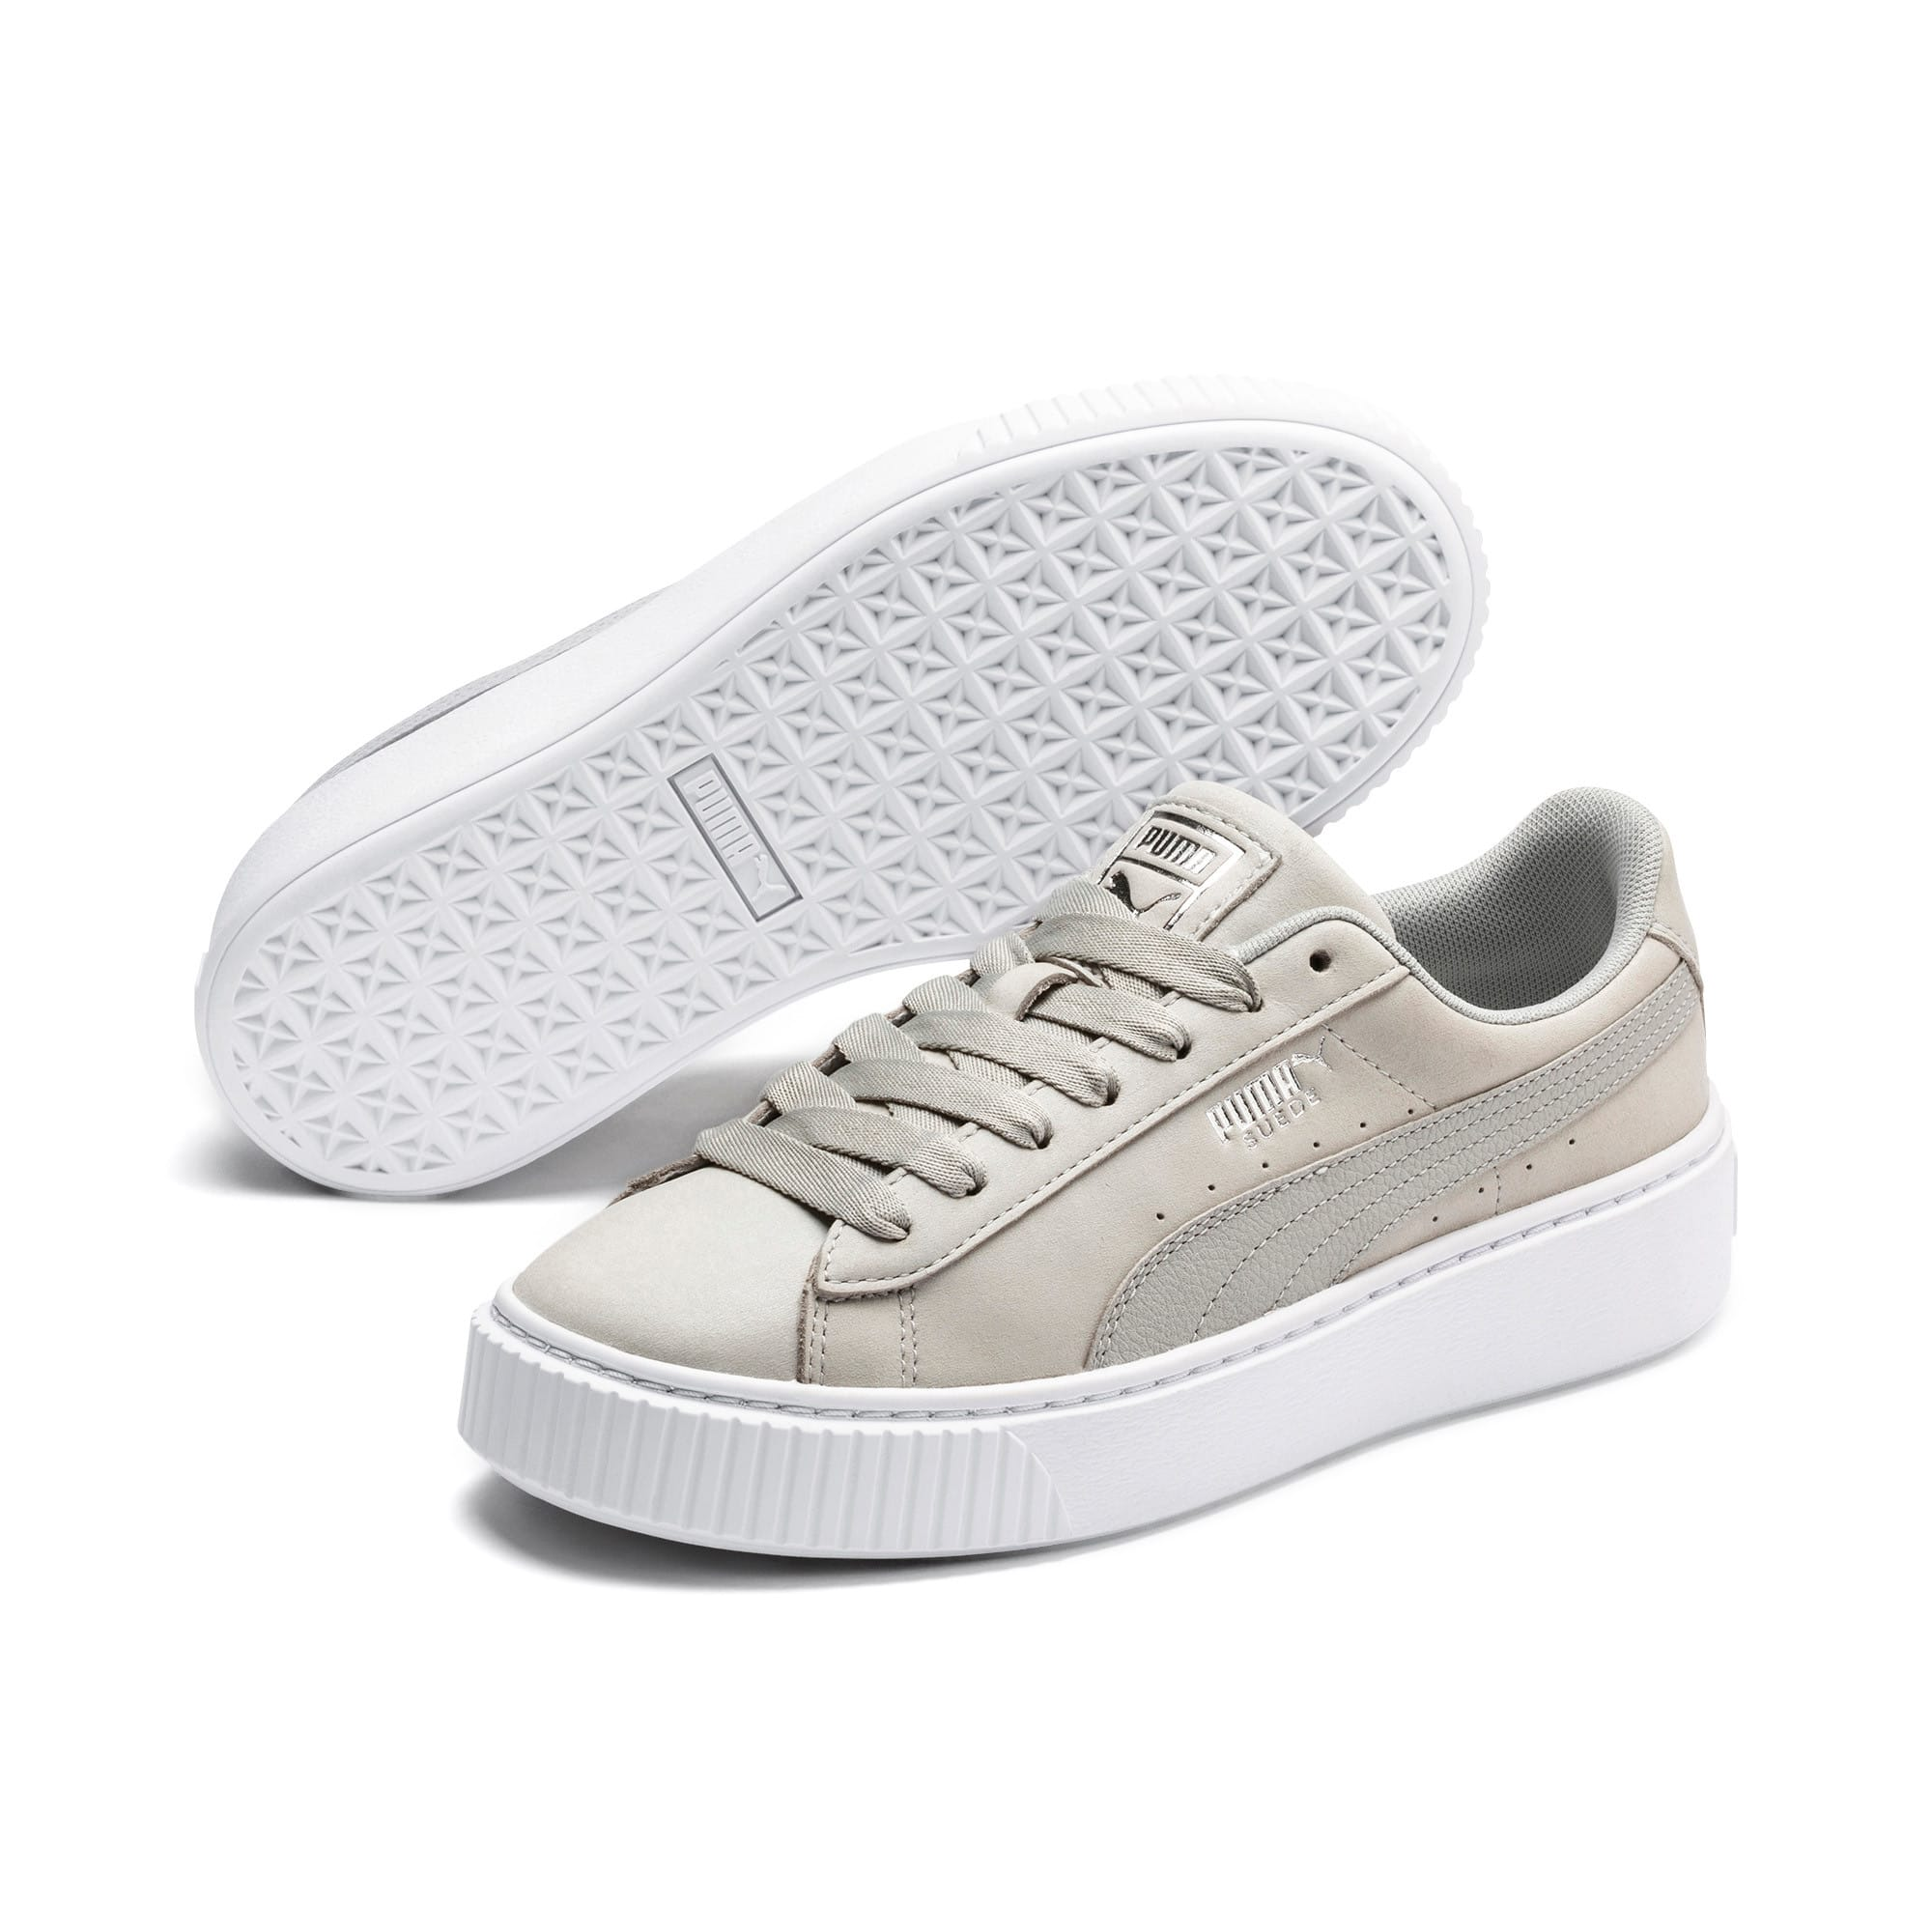 Thumbnail 3 of Suede Platform Shimmer Women's Sneakers, Gray Violet-Puma White, medium